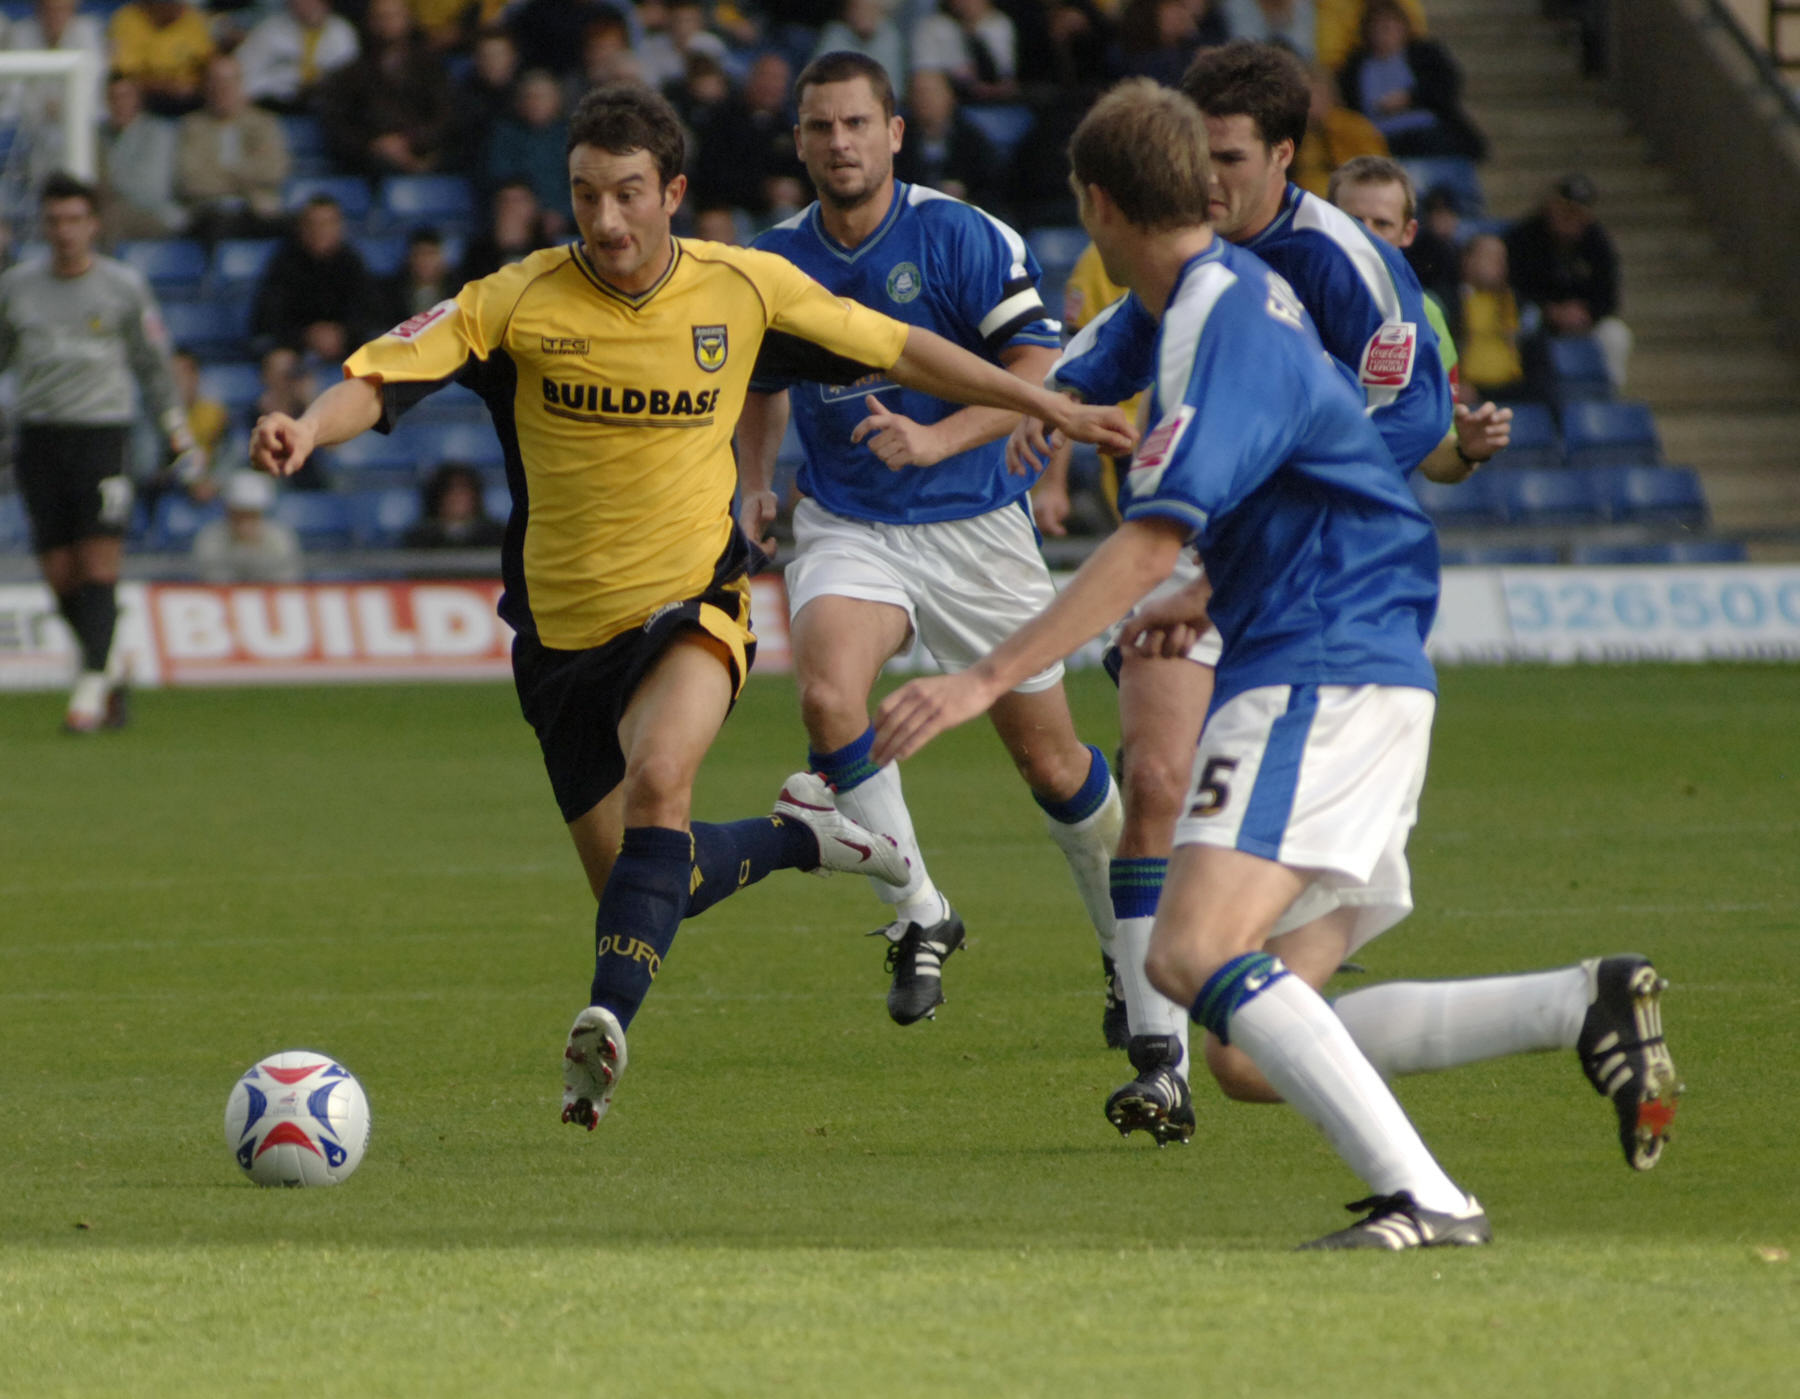 ON THE RUN: Chris Hackett in action as a player for Oxford United in 2005 	 Picture: George Reszeter